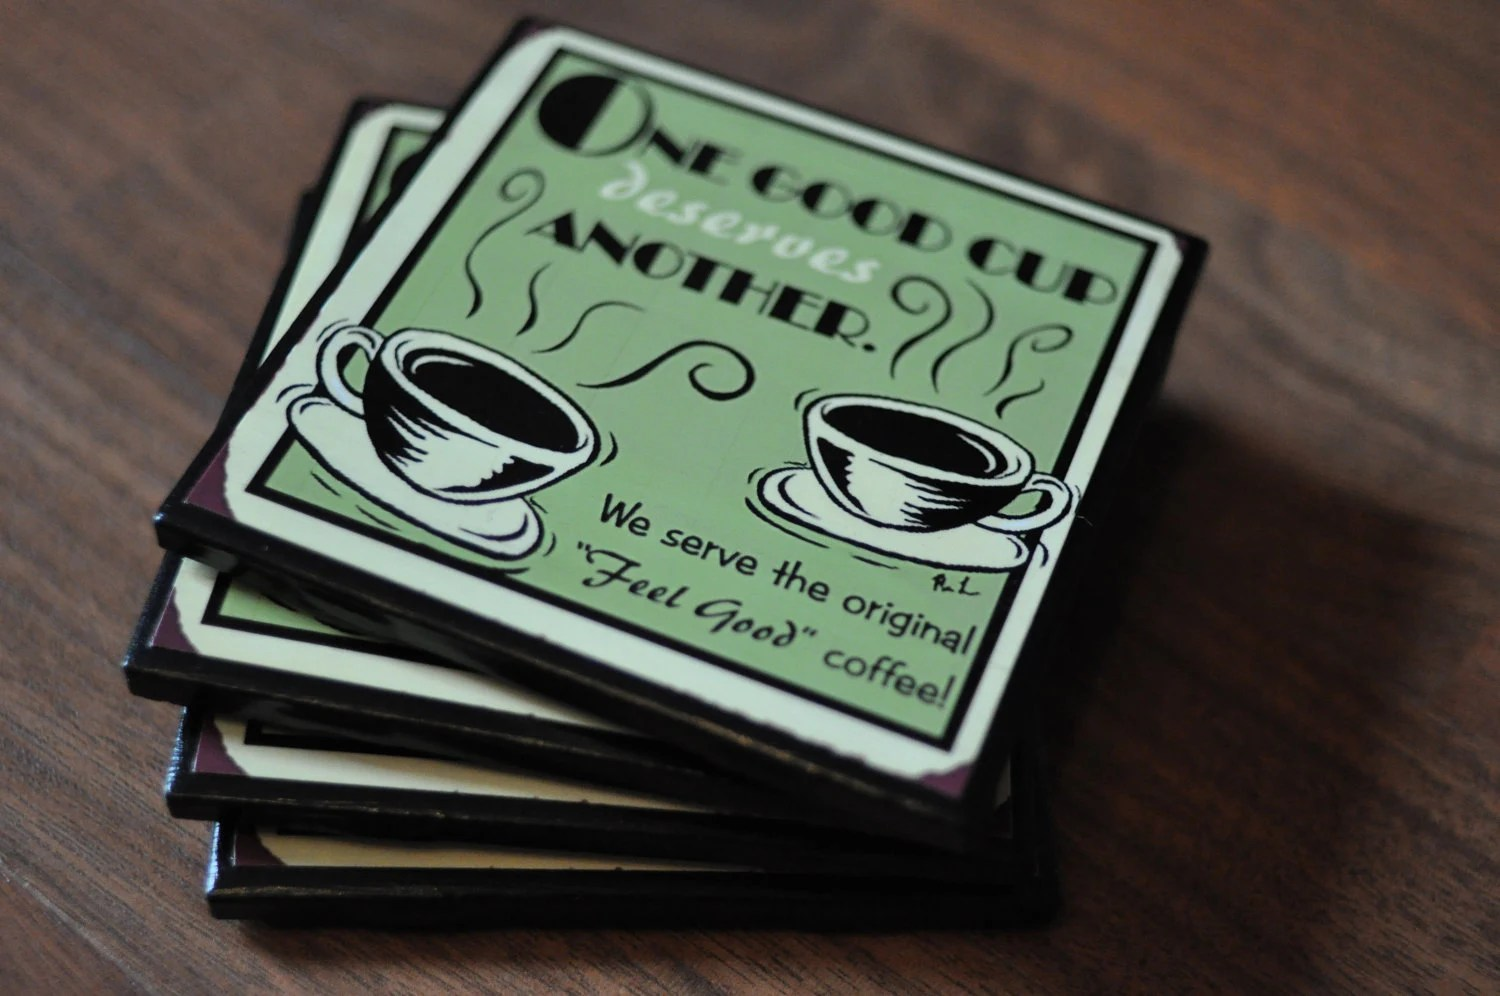 Vintage Diner Coffee Shop Ceramic Coasters - CarovaCreations